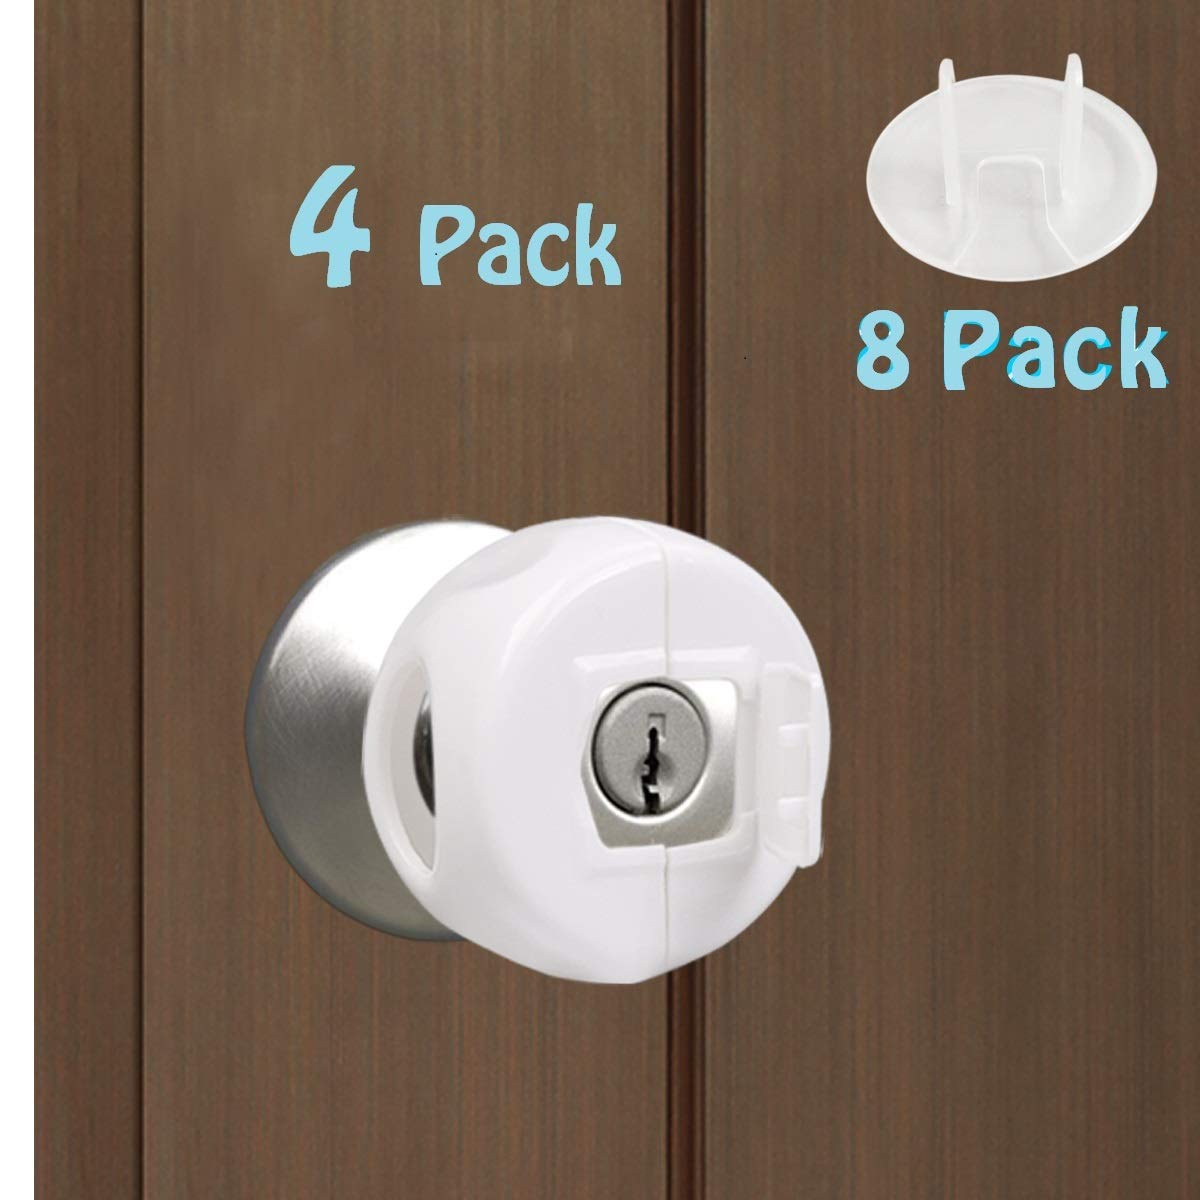 OWMMIZ Door Knob Safety Cover with Lock Cover, Baby Safety Proofing Child Proof Door Handle Covers with 8 Pack Outlets Covers, 4 Pack